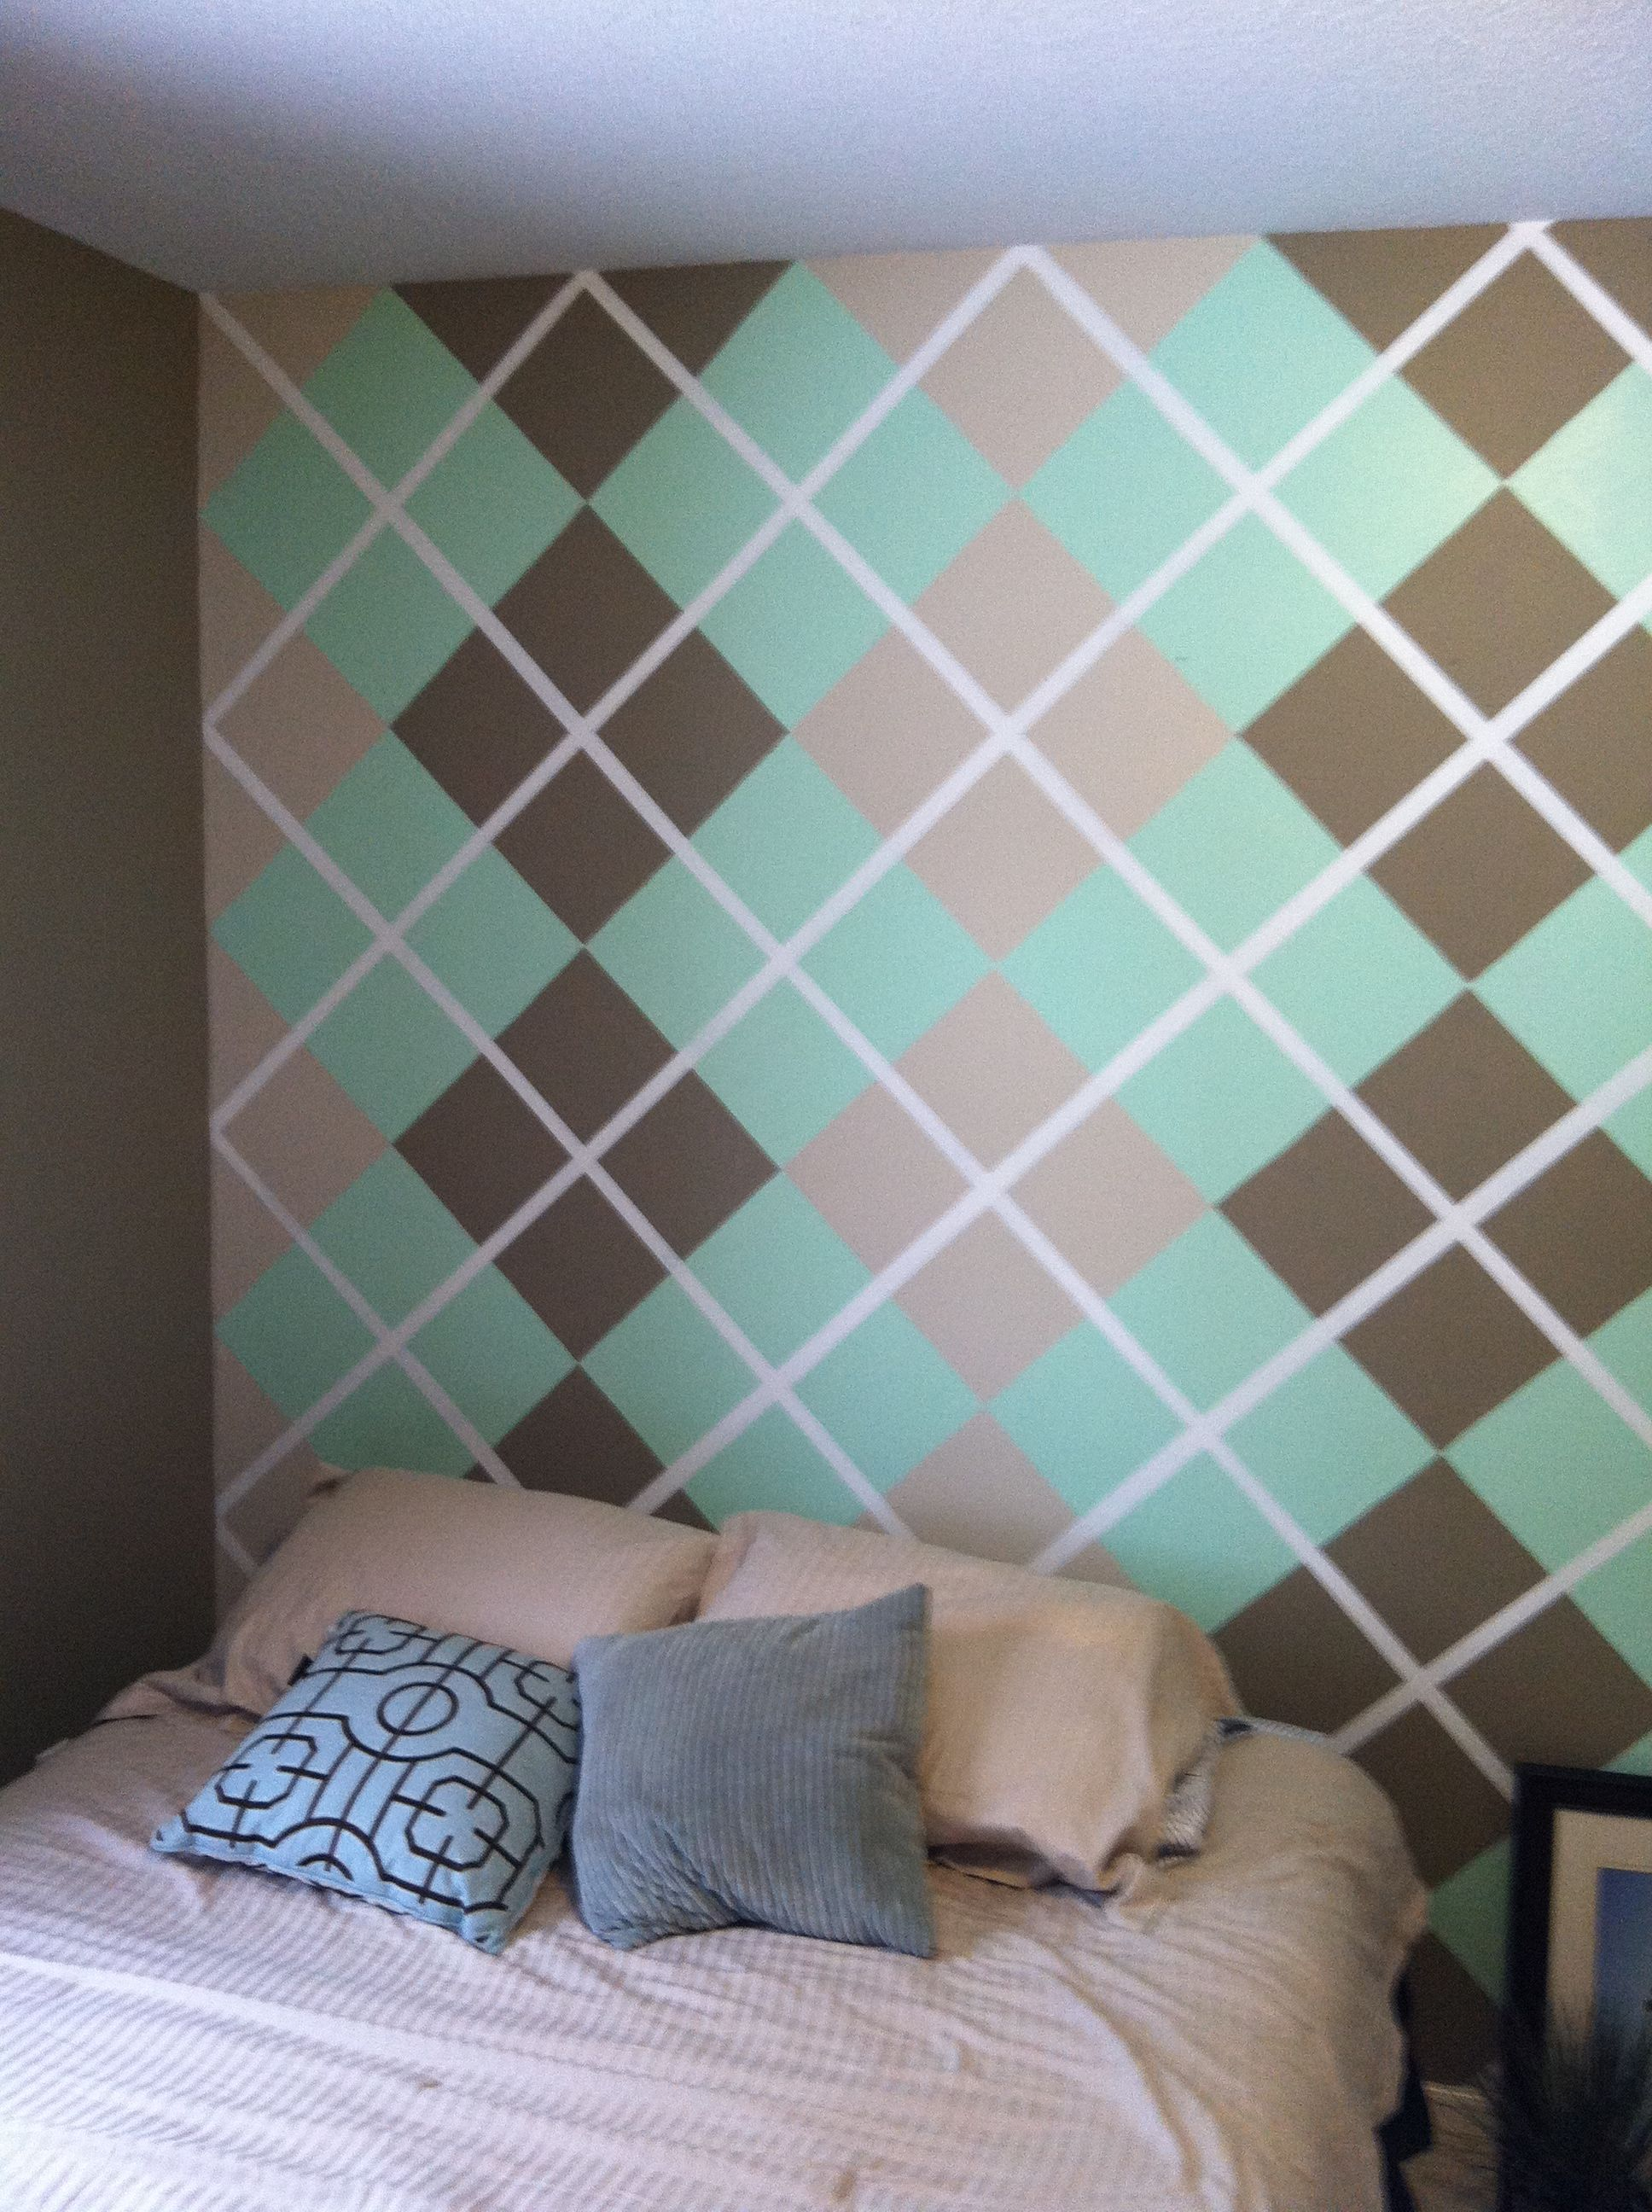 Wall paint patterns using tape - Paint Design On The Wall Using Painting Tape